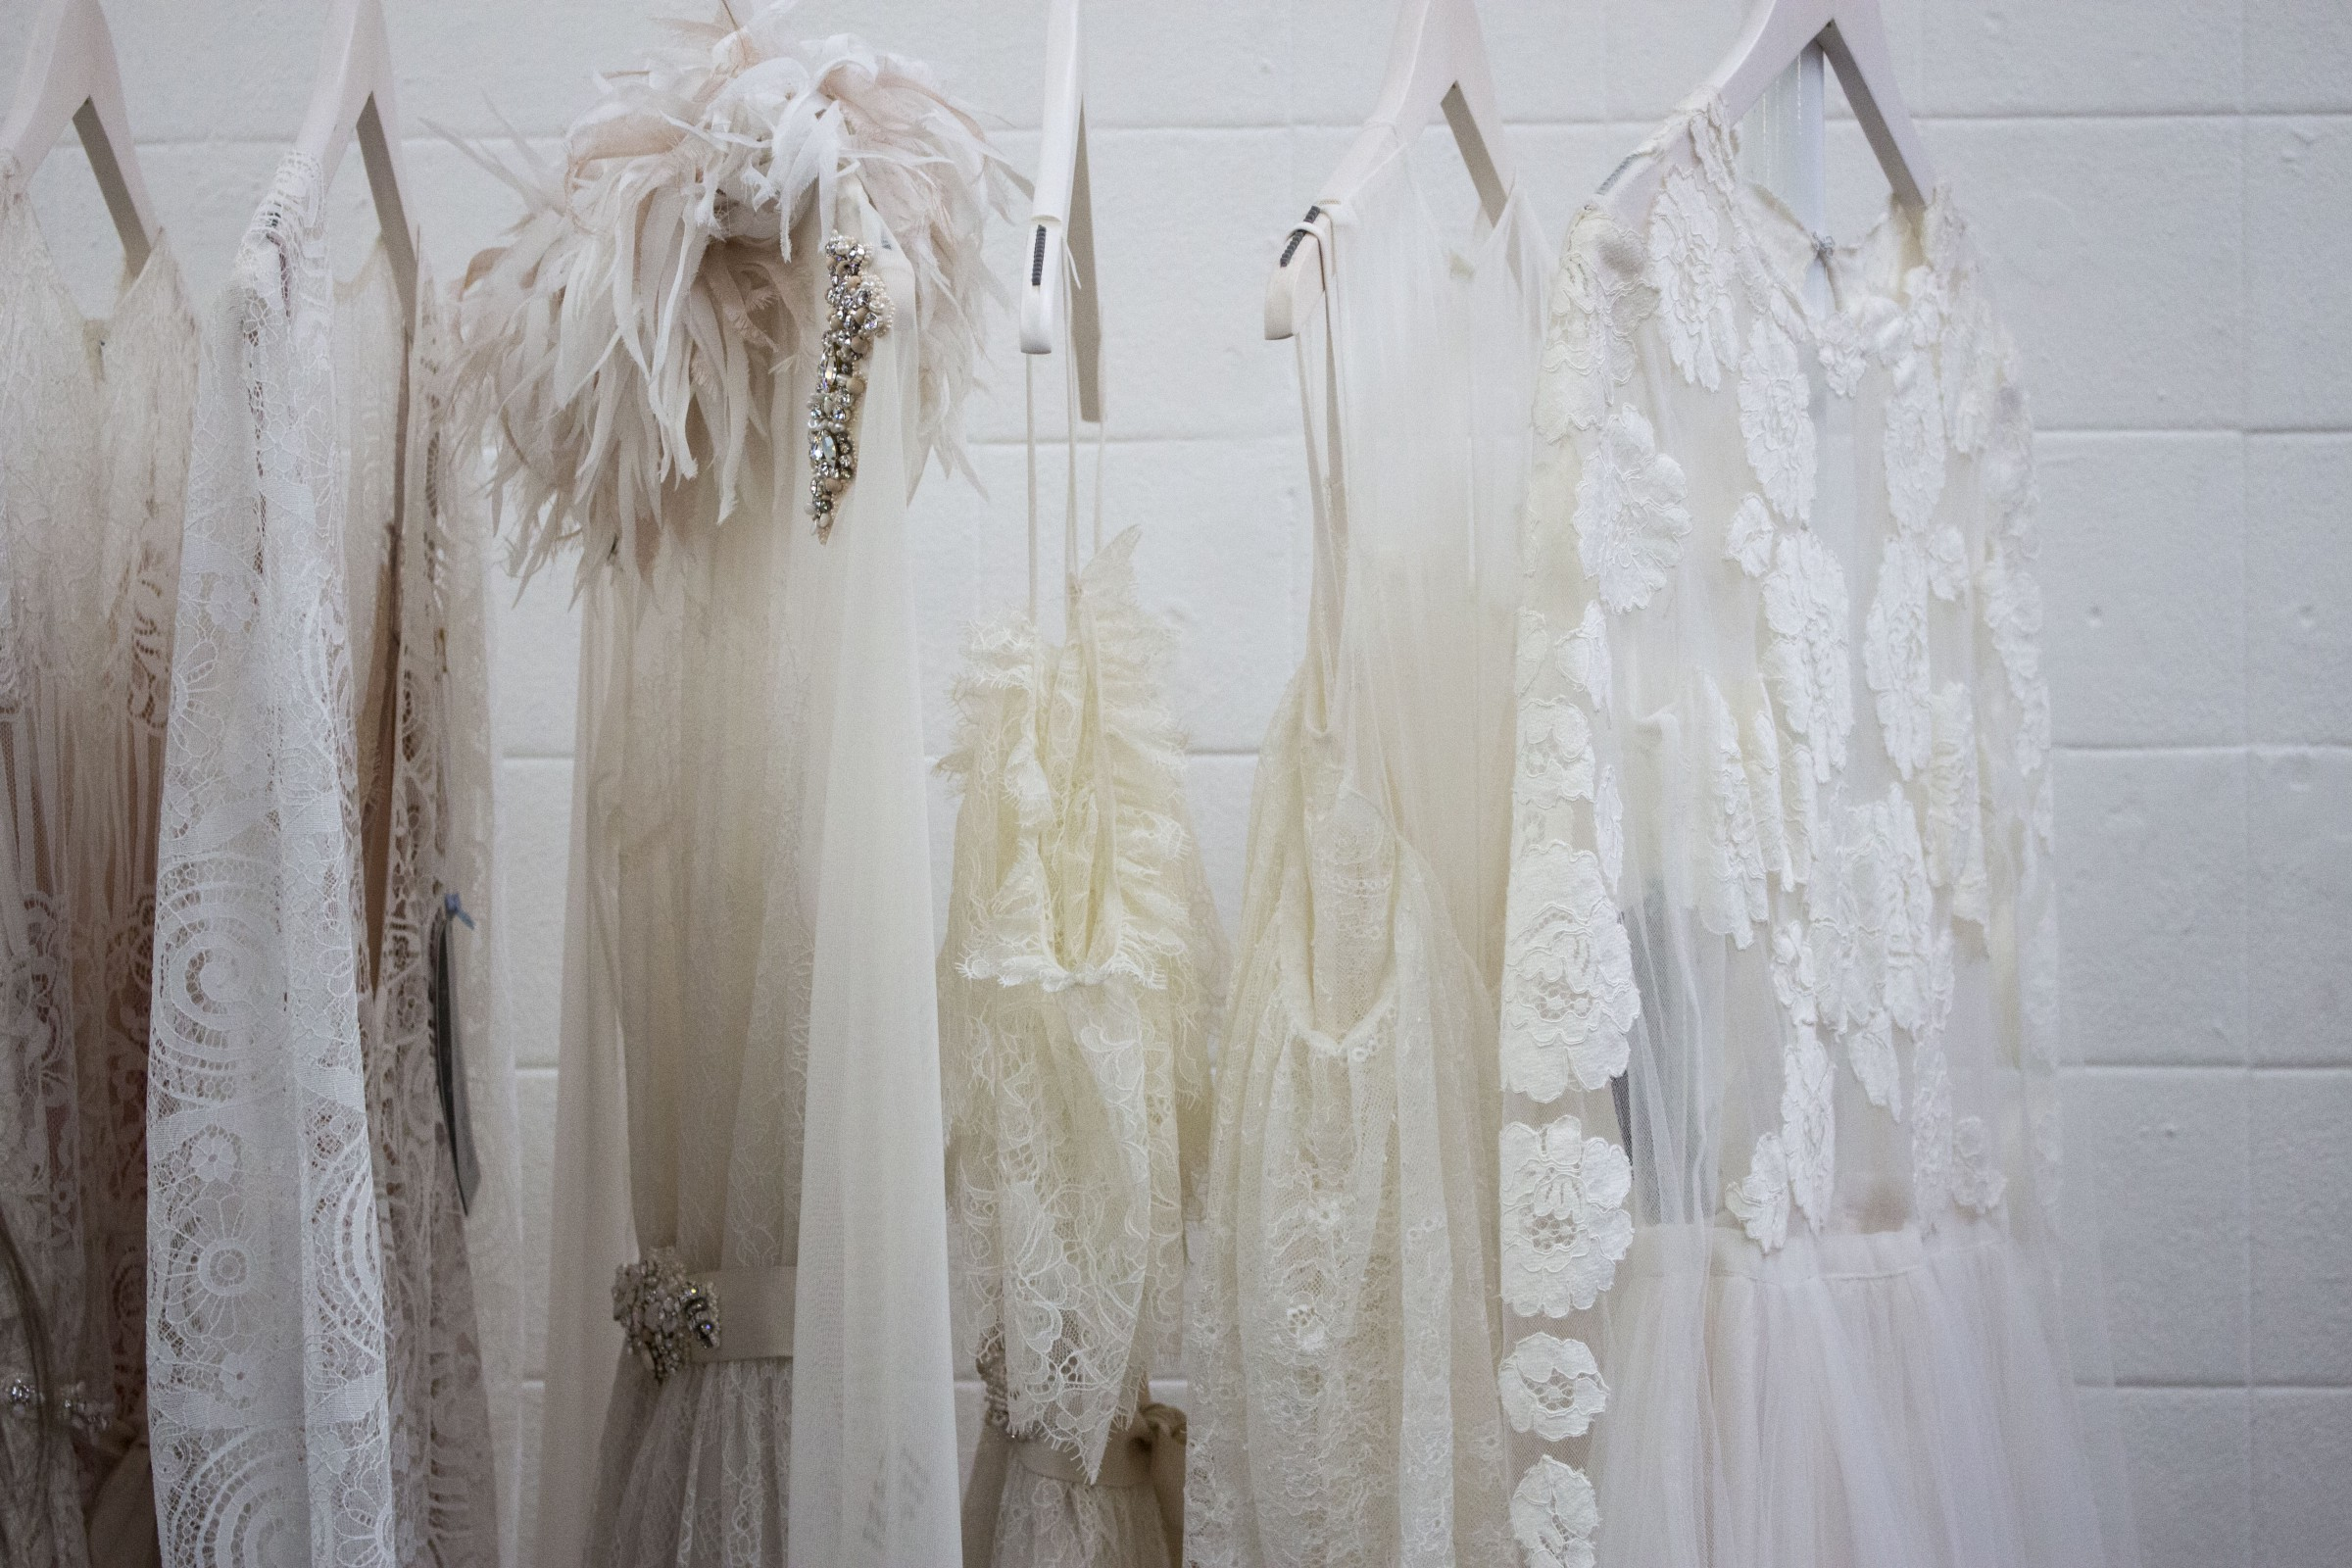 White dresses on white hangers against a white background.